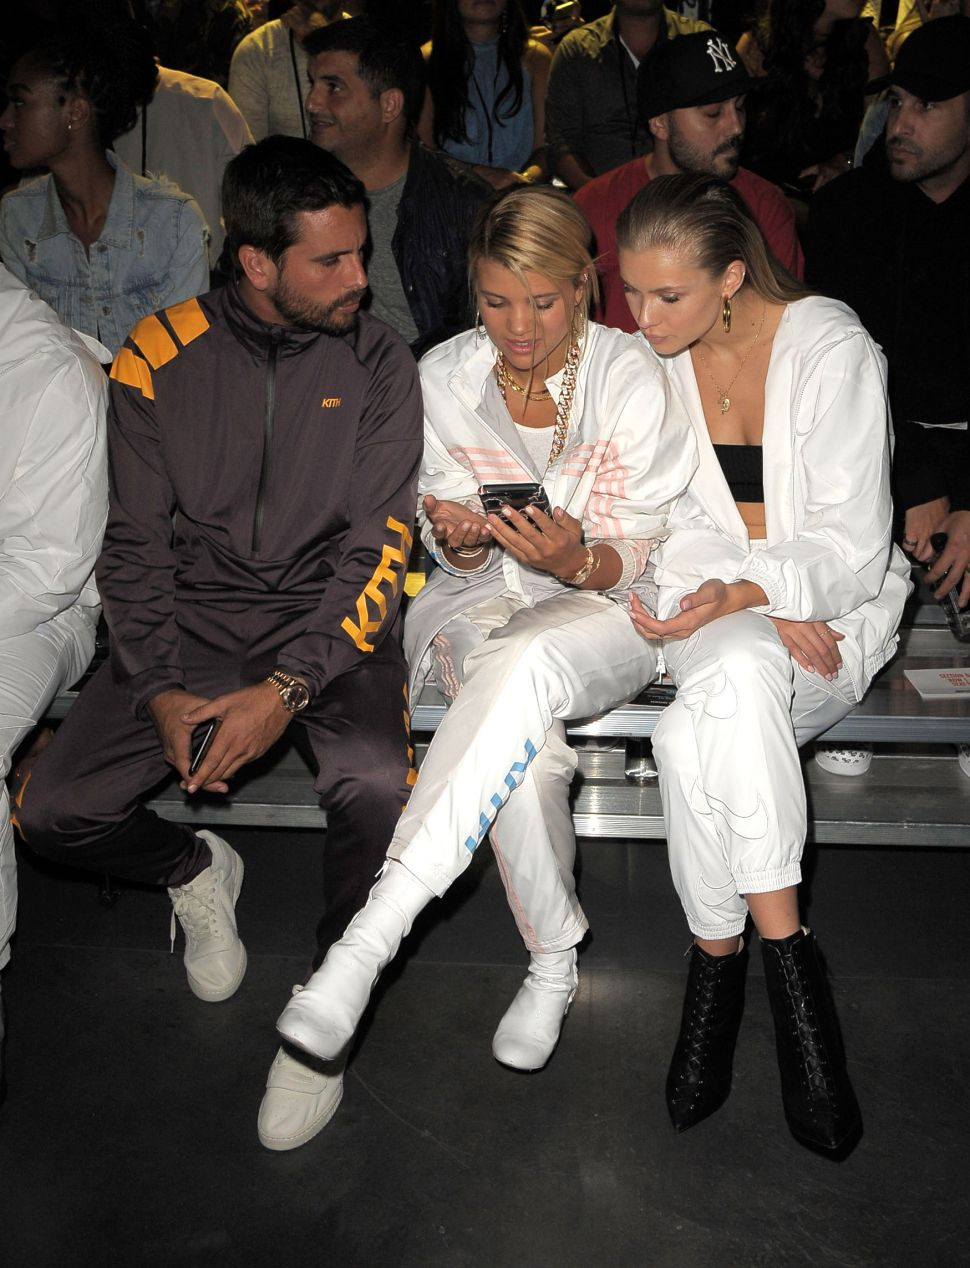 Here's Where Sofia Richie and Scott Disick Were Seen Canoodling